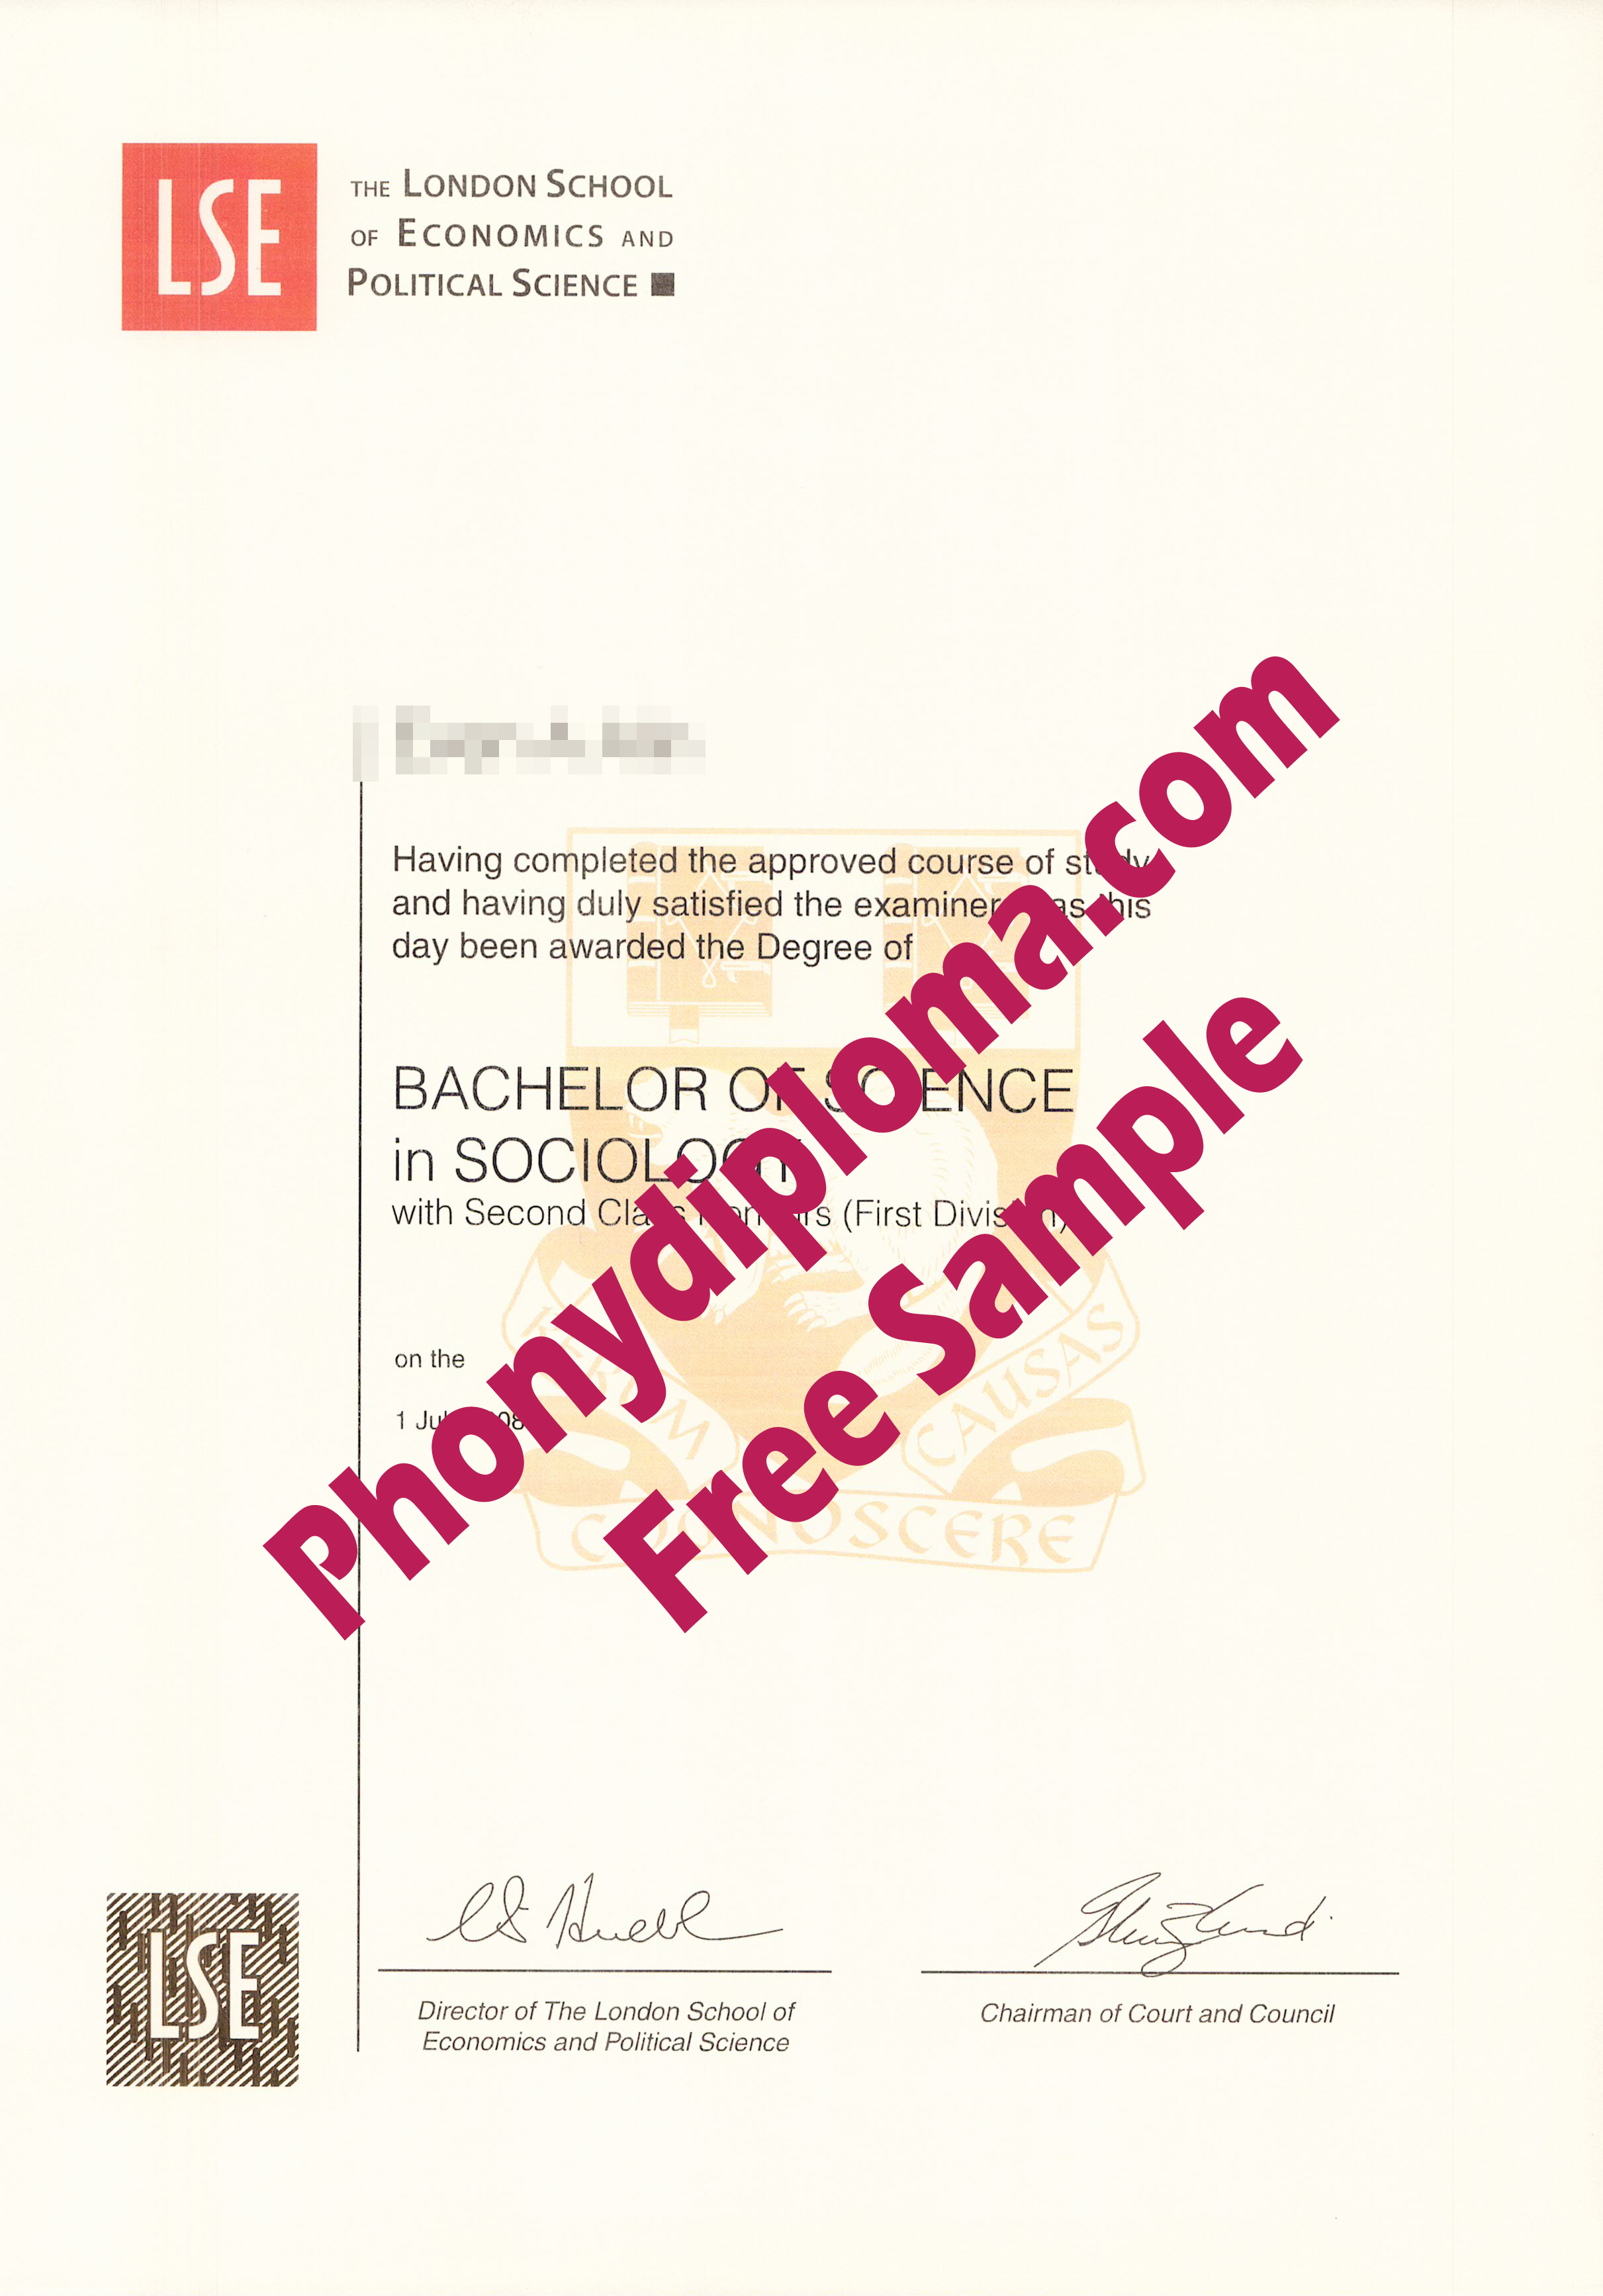 Lse London School Of Economics And Political Science Free Sample From Phonydiploma